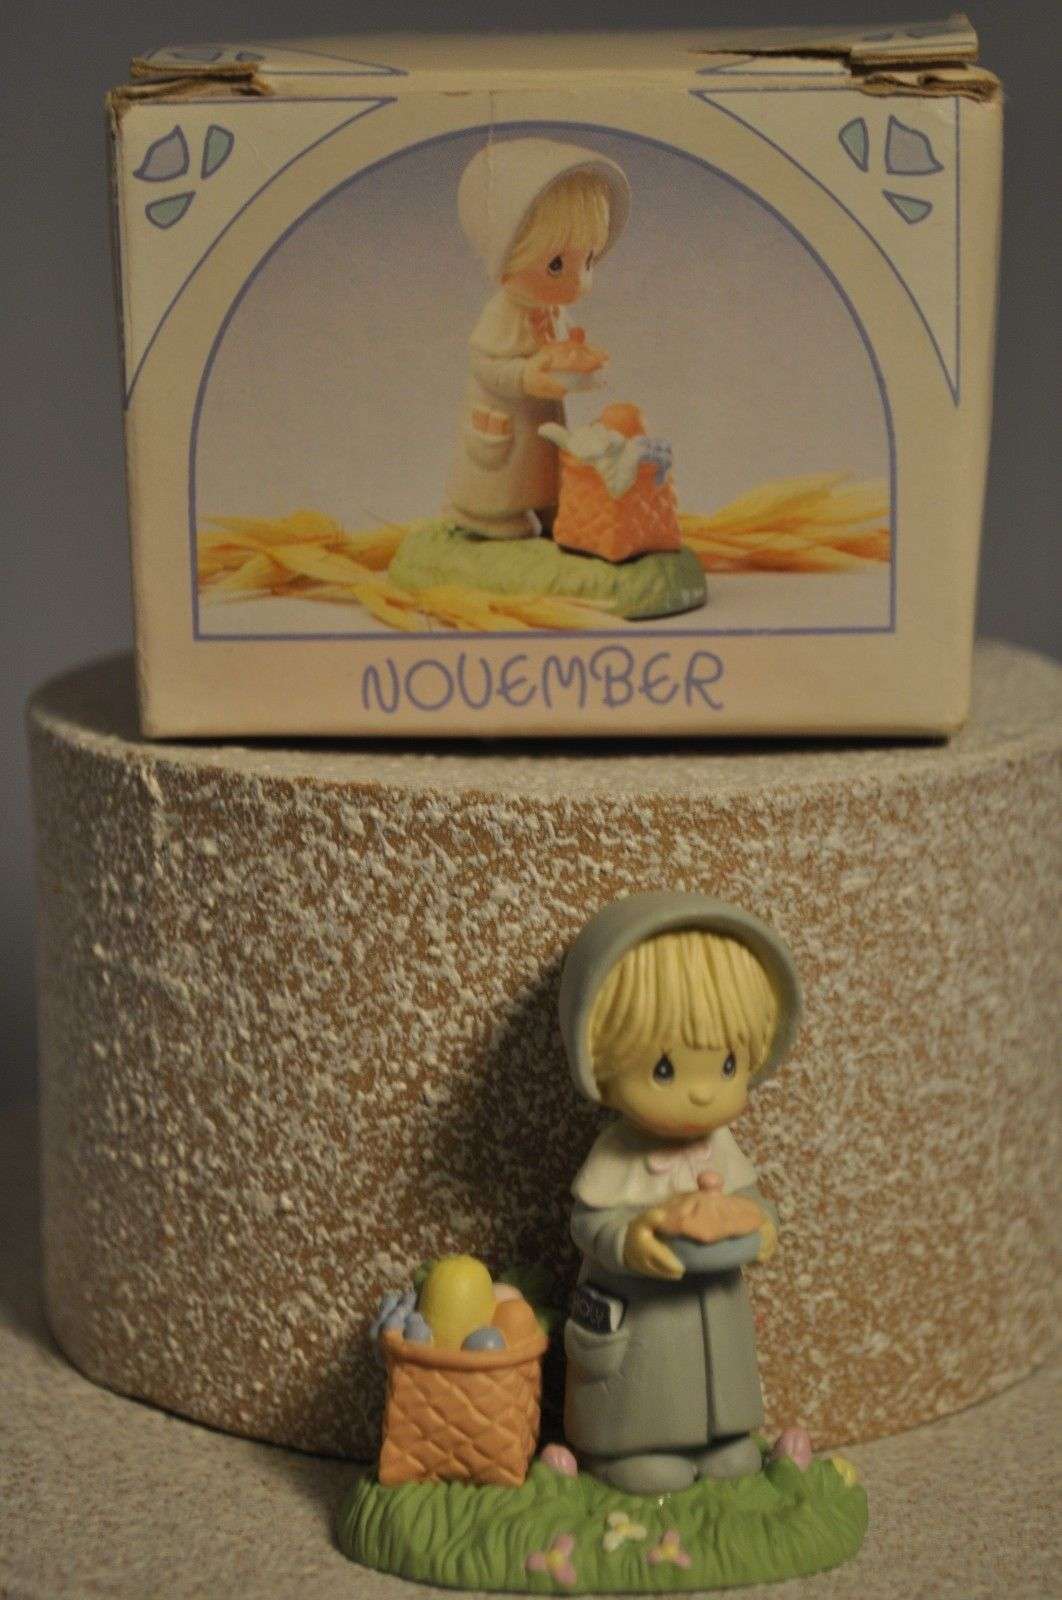 Primary image for Precious Moments - November - Pilgrim Girl with Pie - 573892 Miniature